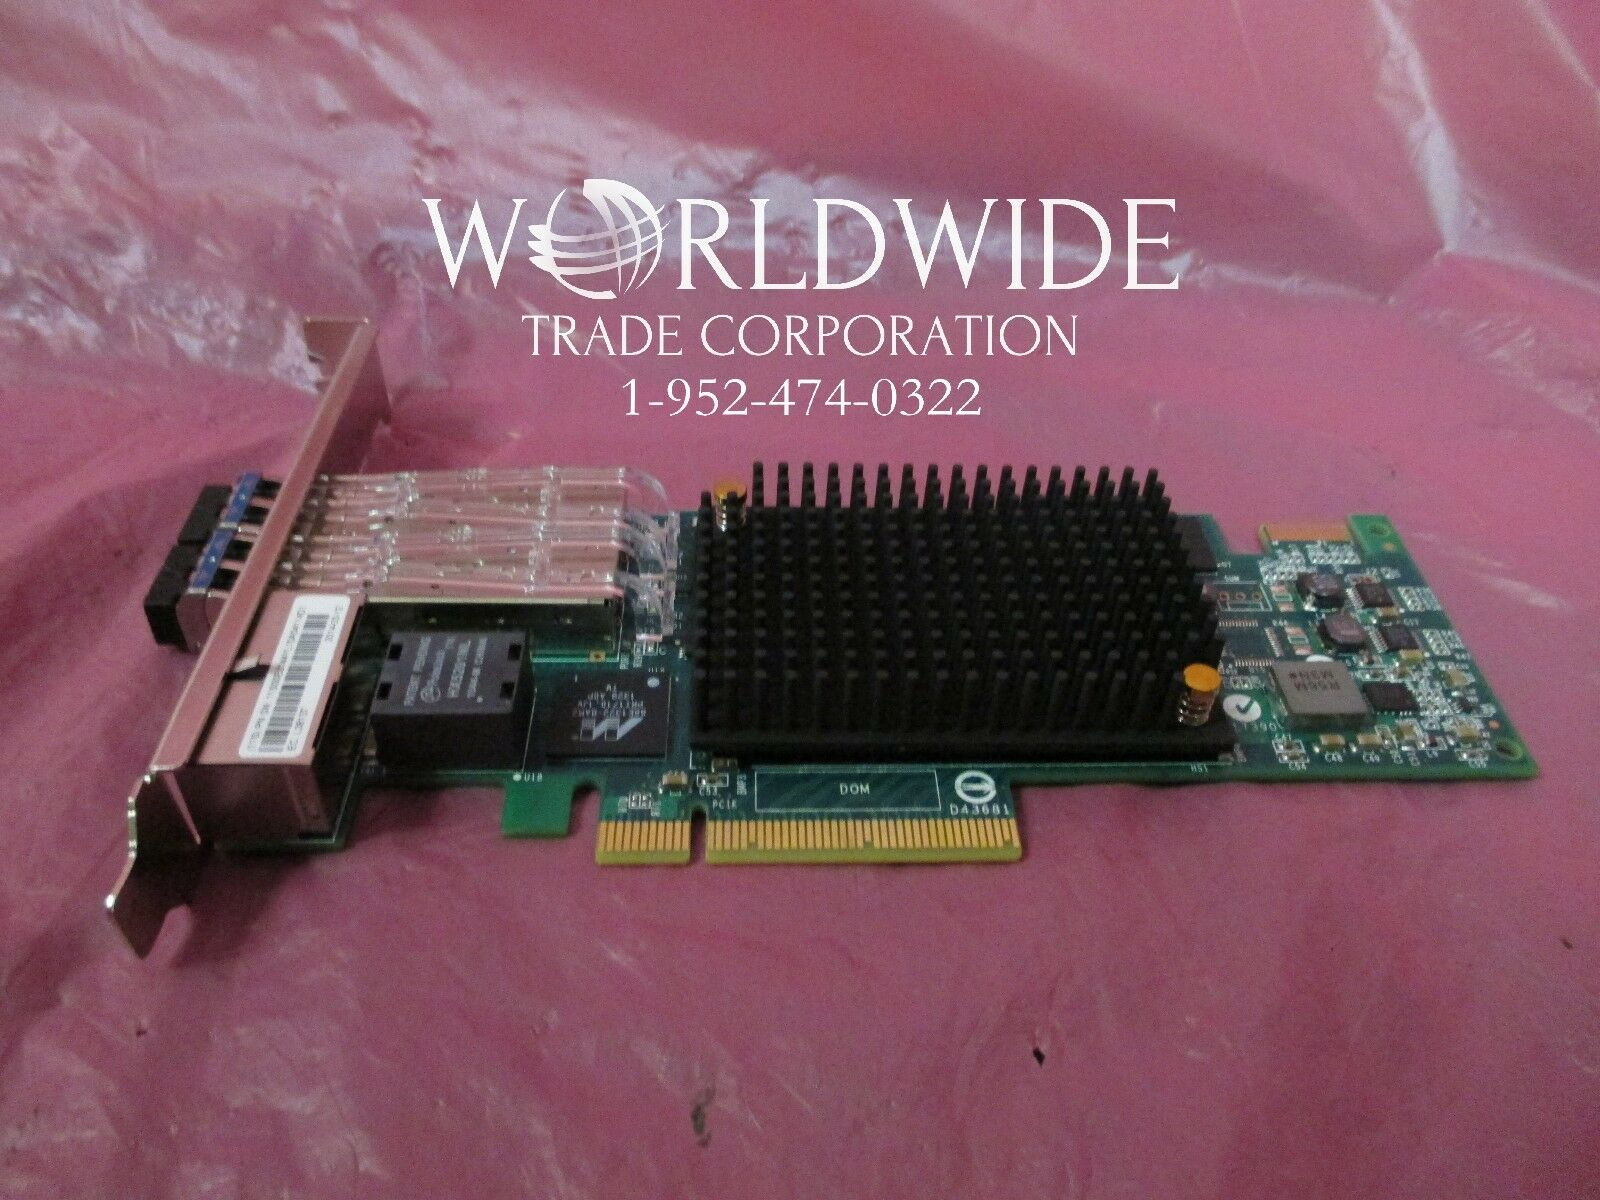 New IBM EN0M PCIe3 4-Port ( 10GB FCoE / 1 GbE ) LR and RJ45 Adapter for 8286-41A